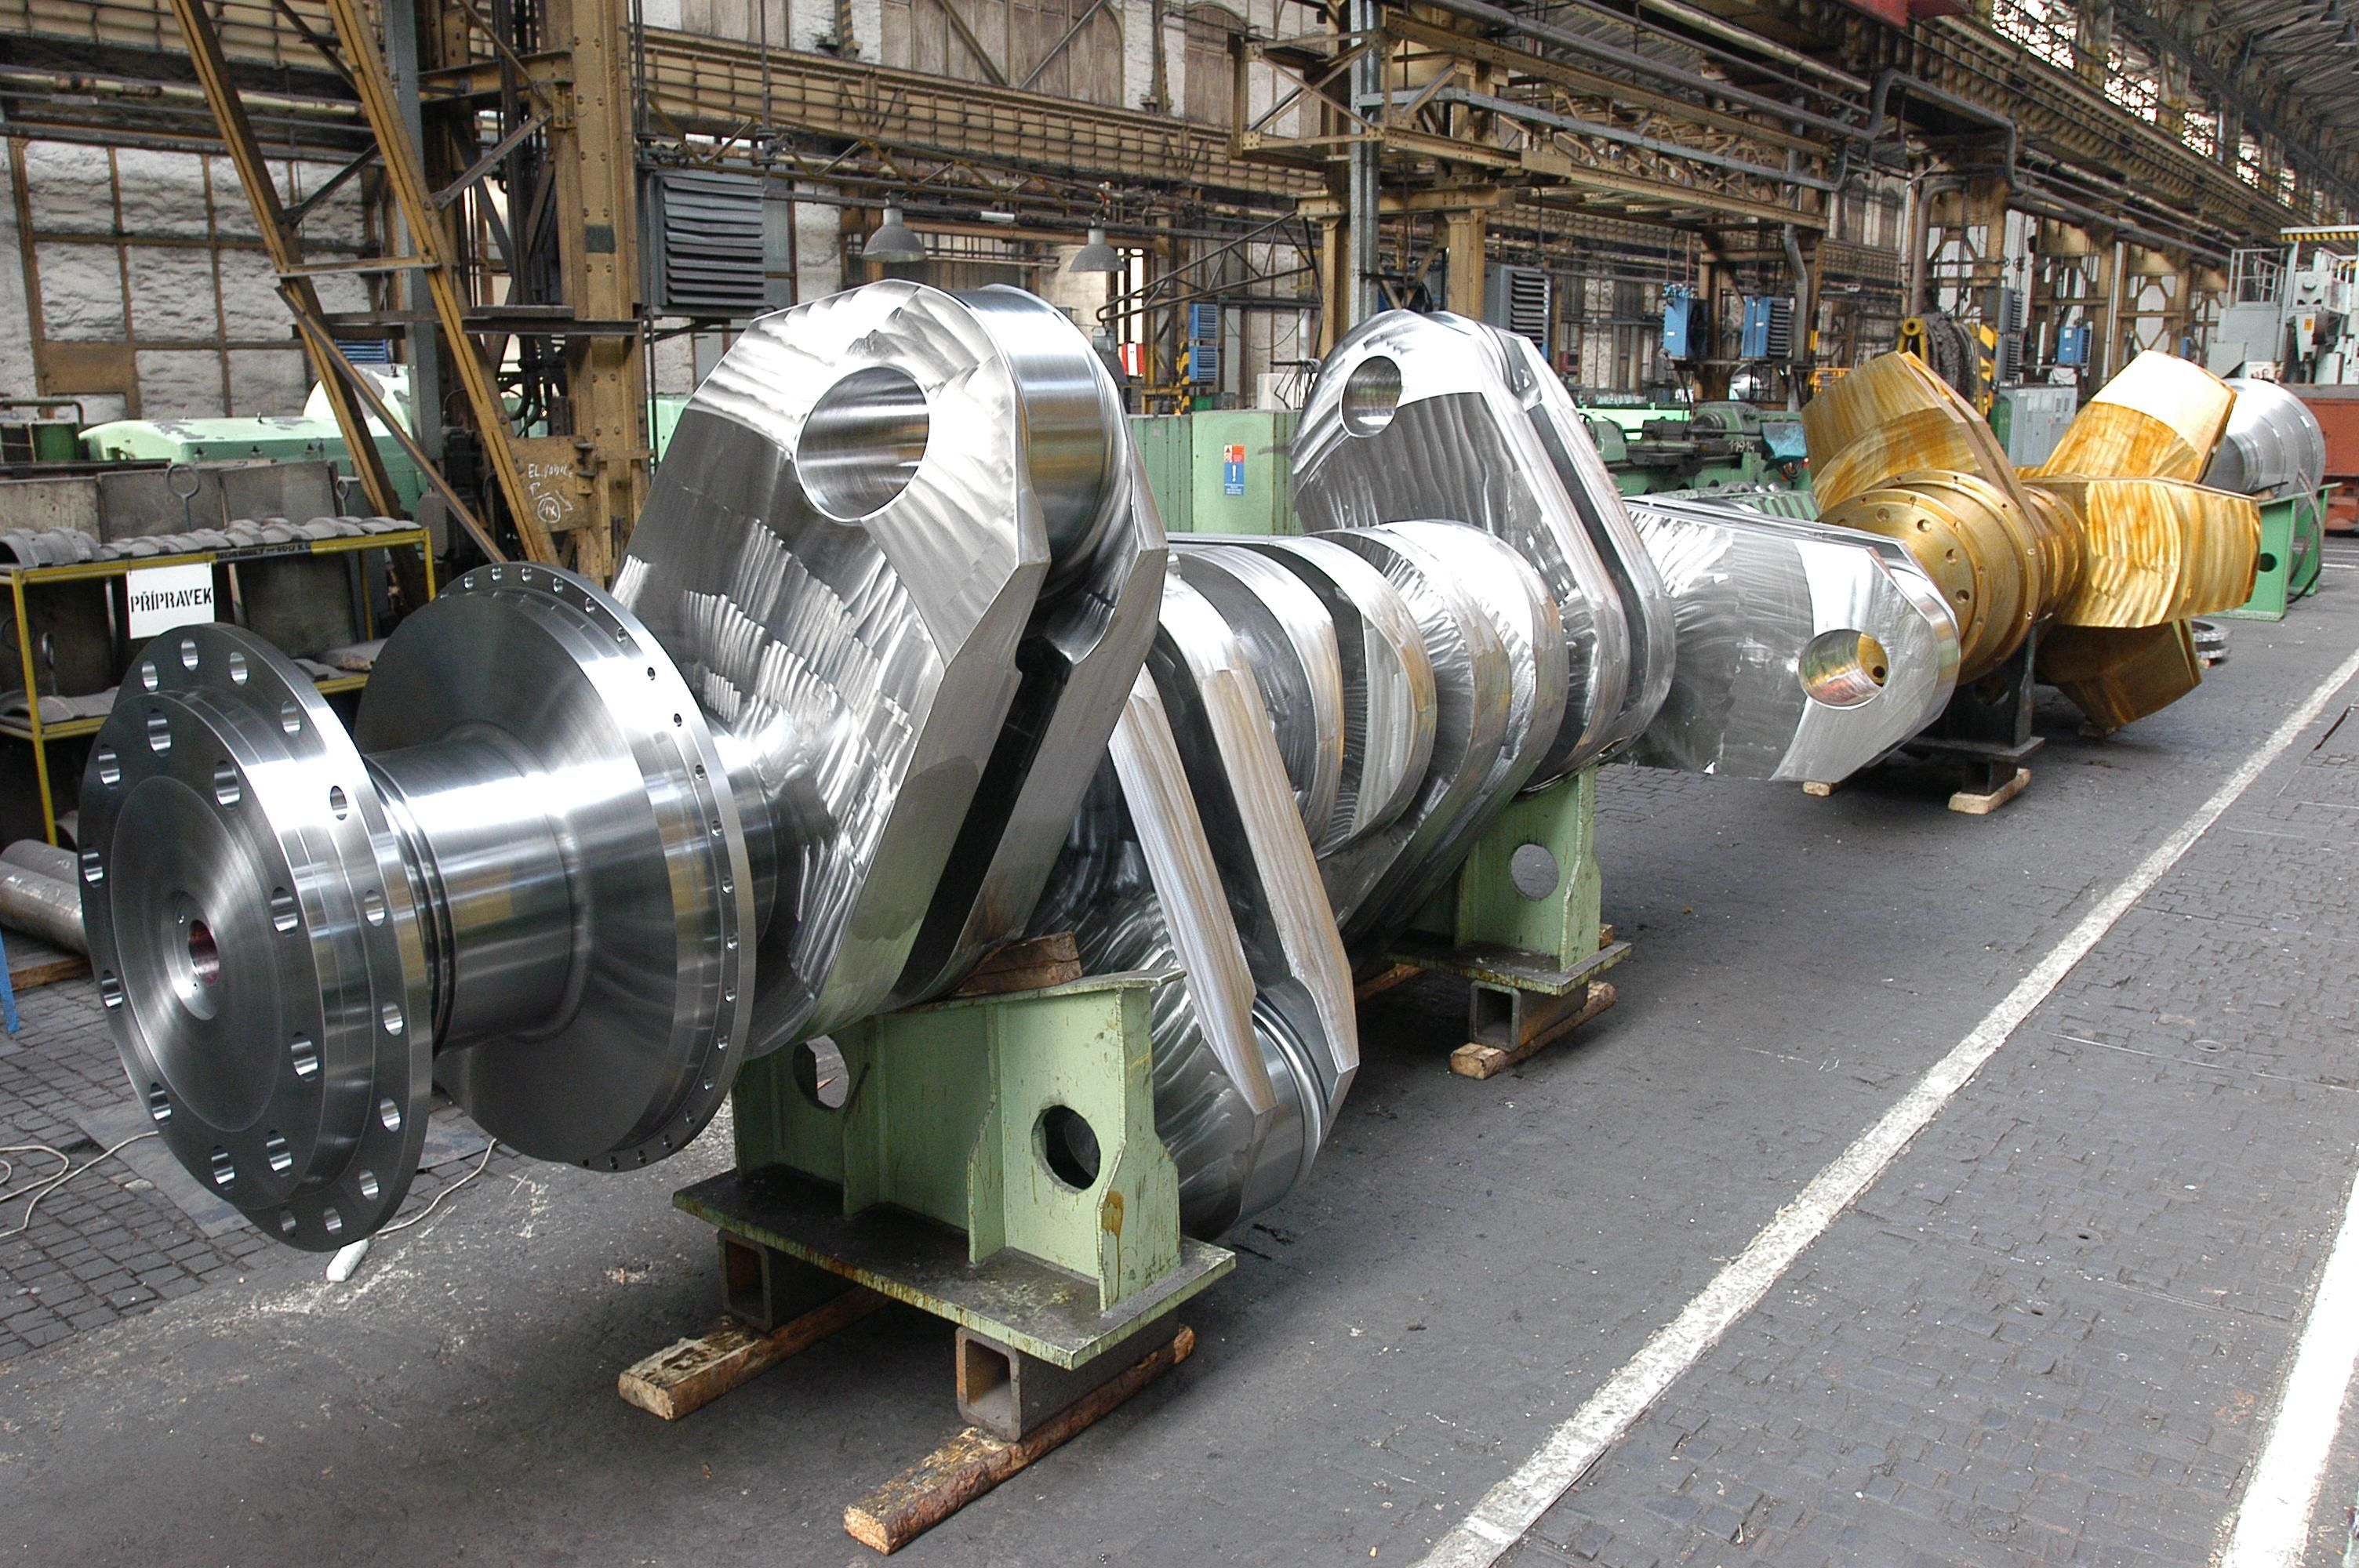 Crankshaft For A Diesel Ship Engine THE GIGANTIC MACHINE SHOP - Largest cruise ship engines